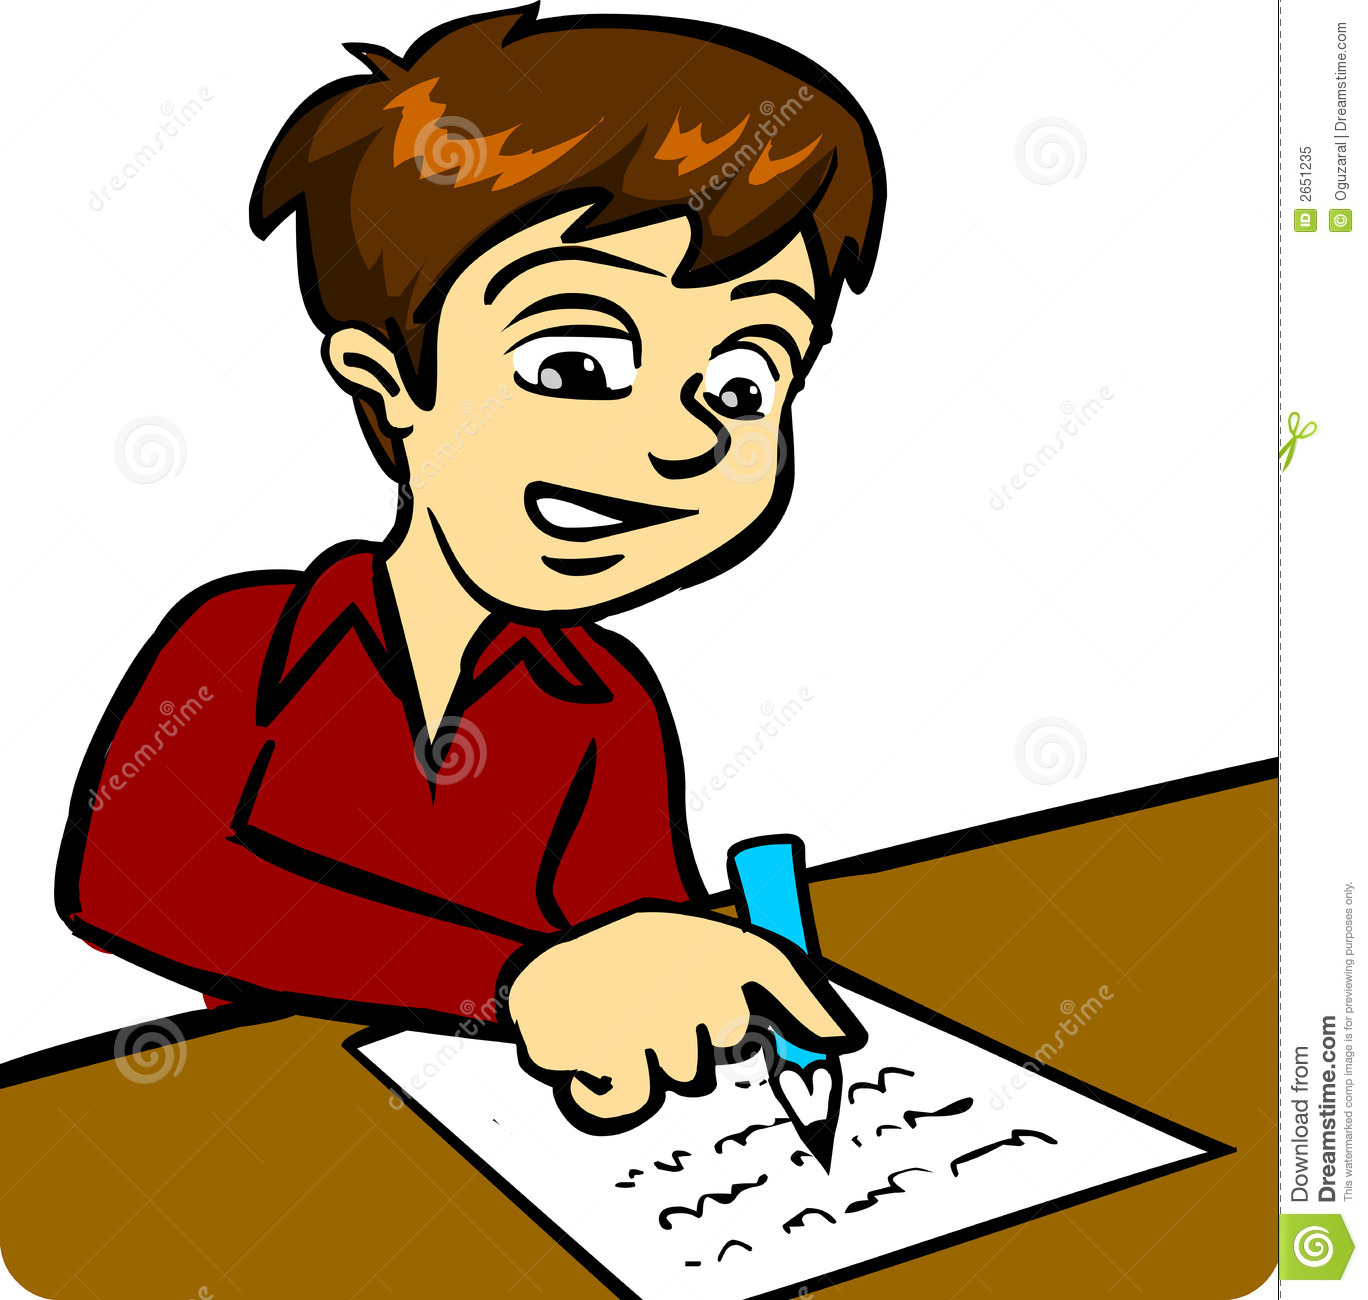 Author clipart boy. Writing clip art for